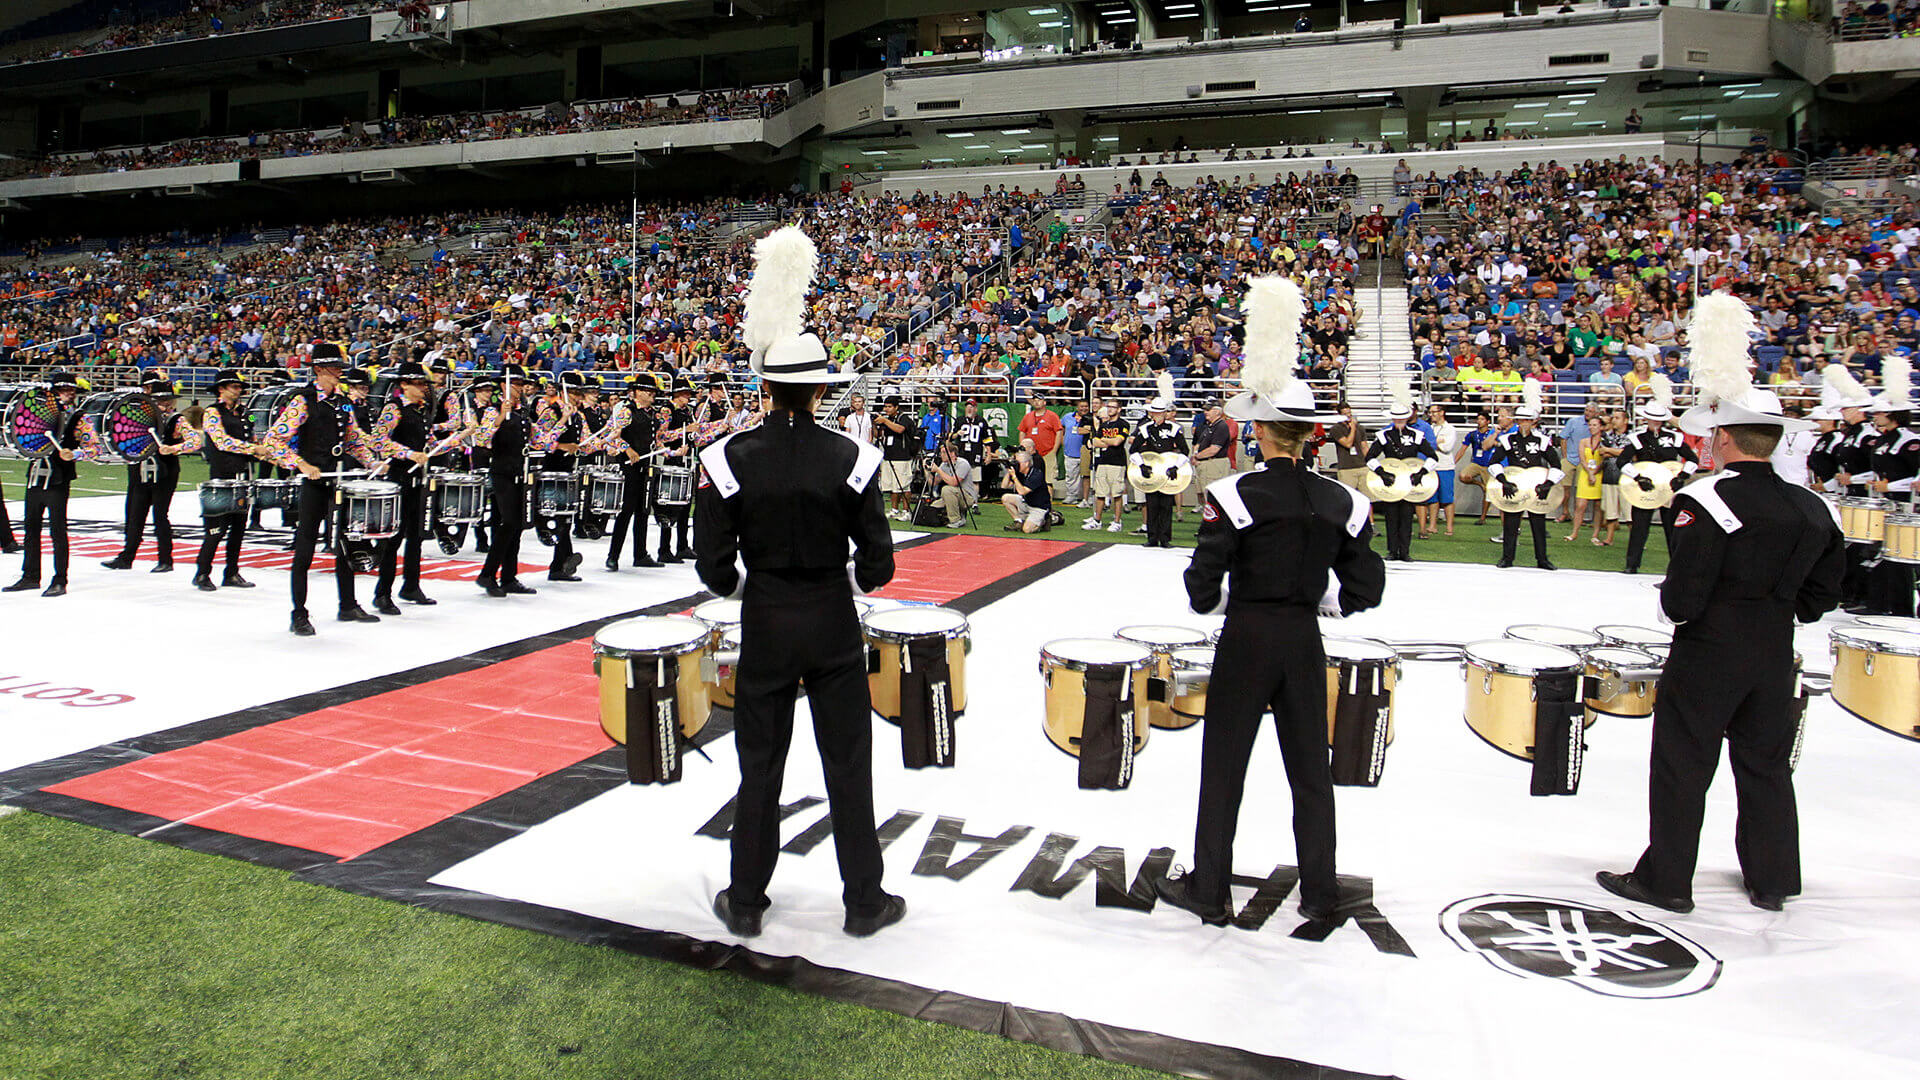 Saturday showdown will rematch most popular DrumLine Battle of all time